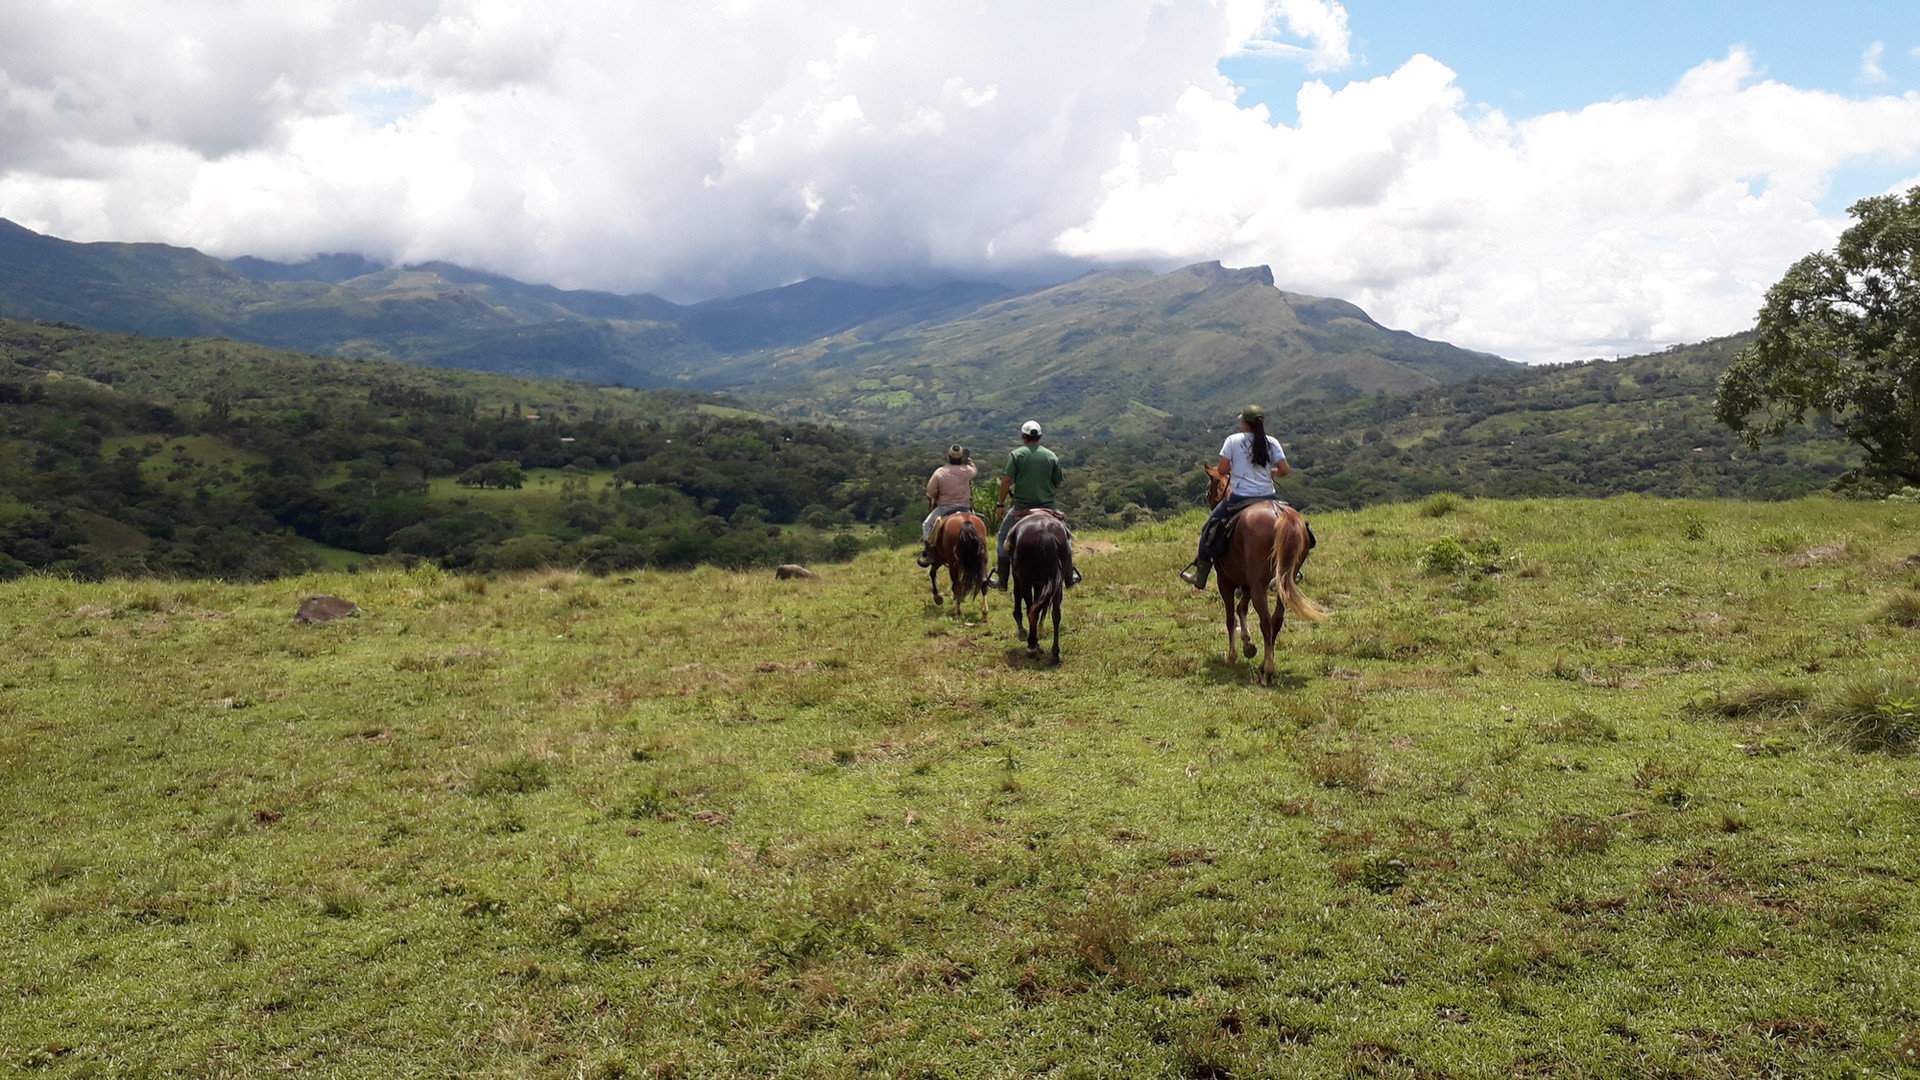 Horseback riding in central Panama.